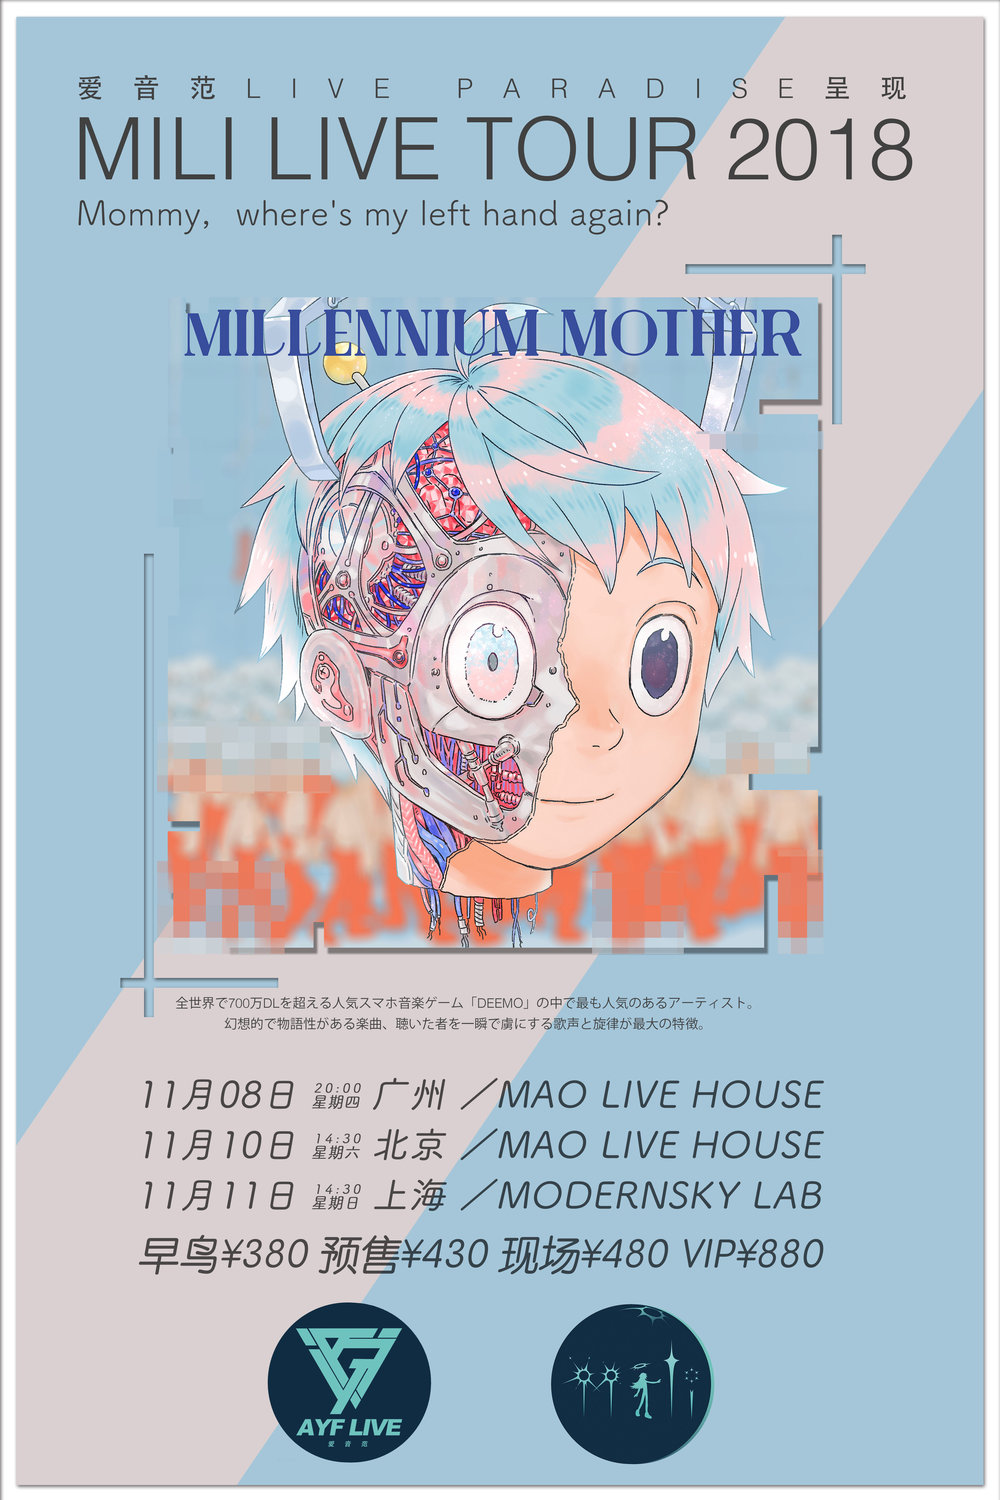 "There has been some changes to the concert dates. Sorry for any inconveniences.    Mili LIVE TOUR 2018 IN CHINA  ""Mommy, where's my left hand again?""    Nov 8 Guangzhou  Nov 10 Beijing  Nov 11 Shanghai  Tickets on sale Sep 1, 1 pm CT!  Tickets here: https://bit.ly/2PbF6Ma  ※The drummer, Shoto Yoshida won't be joining the tour due to conflict of schedule  Mili中国巡演北京上海日期因故变更  Mili LIVE TOUR 2018 IN CHINA  ""Mommy, where's my left hand again? ""  11/8  广州 MAO Livehouse Guangzhou  11/10  北京 MAO Livehouse Beijing  11/11  上海 MODERNSKY LAB  购票↓  https://bit.ly/2PbF6Ma  *如有退票需求请与平台联系,敬请谅解  ※鼓手吉田翔人因行程缘故无法参加此次巡演,敬请谅解。  中国Tour北京上海の日程が変更になりました  Mili LIVE TOUR 2018 IN CHINA  ""Mommy, where's my left hand again?""  11/8  広州MAO Livehouse  11/10  北京MAO Livehouse  11/11  上海MODERNSKY LAB  チケット料金 前売380中国元/一般430中国元/ VIP880中国元  チケットのお求めは↓  https://bit.ly/2PbF6Ma  ※本公演はDrums吉田翔人の出演はございません"